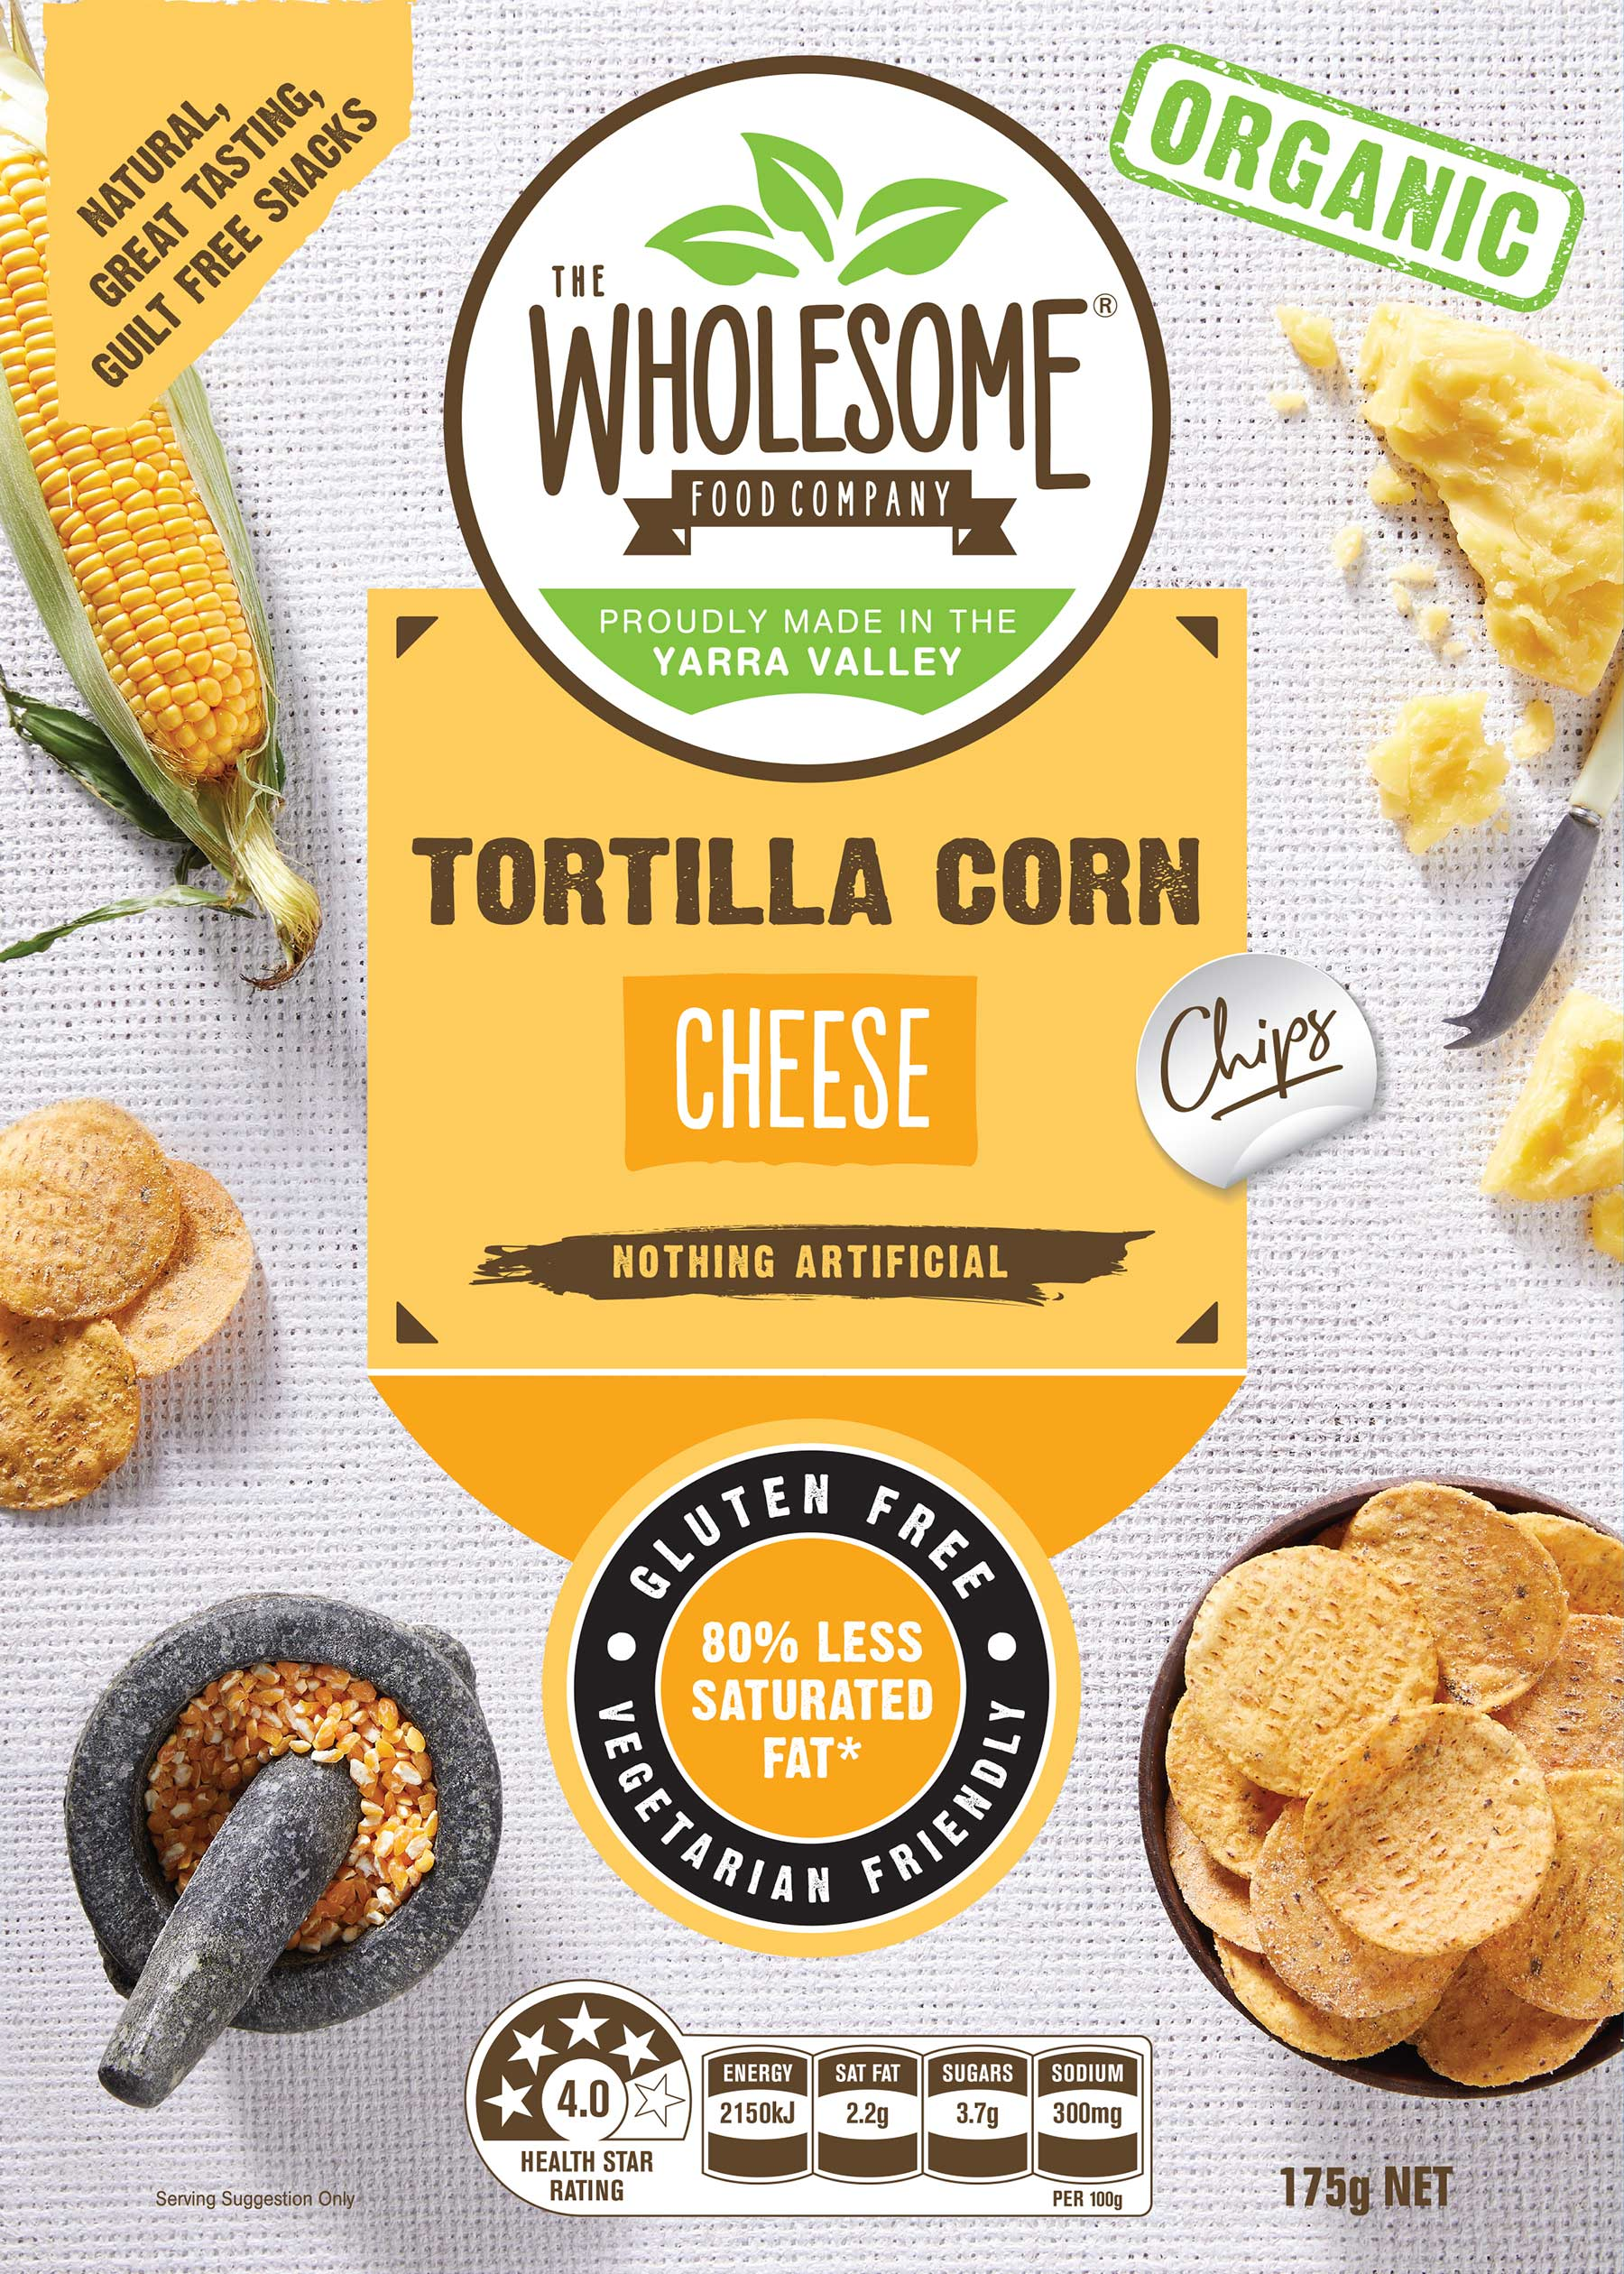 Tortilla Corn Chips Splendid Cheese